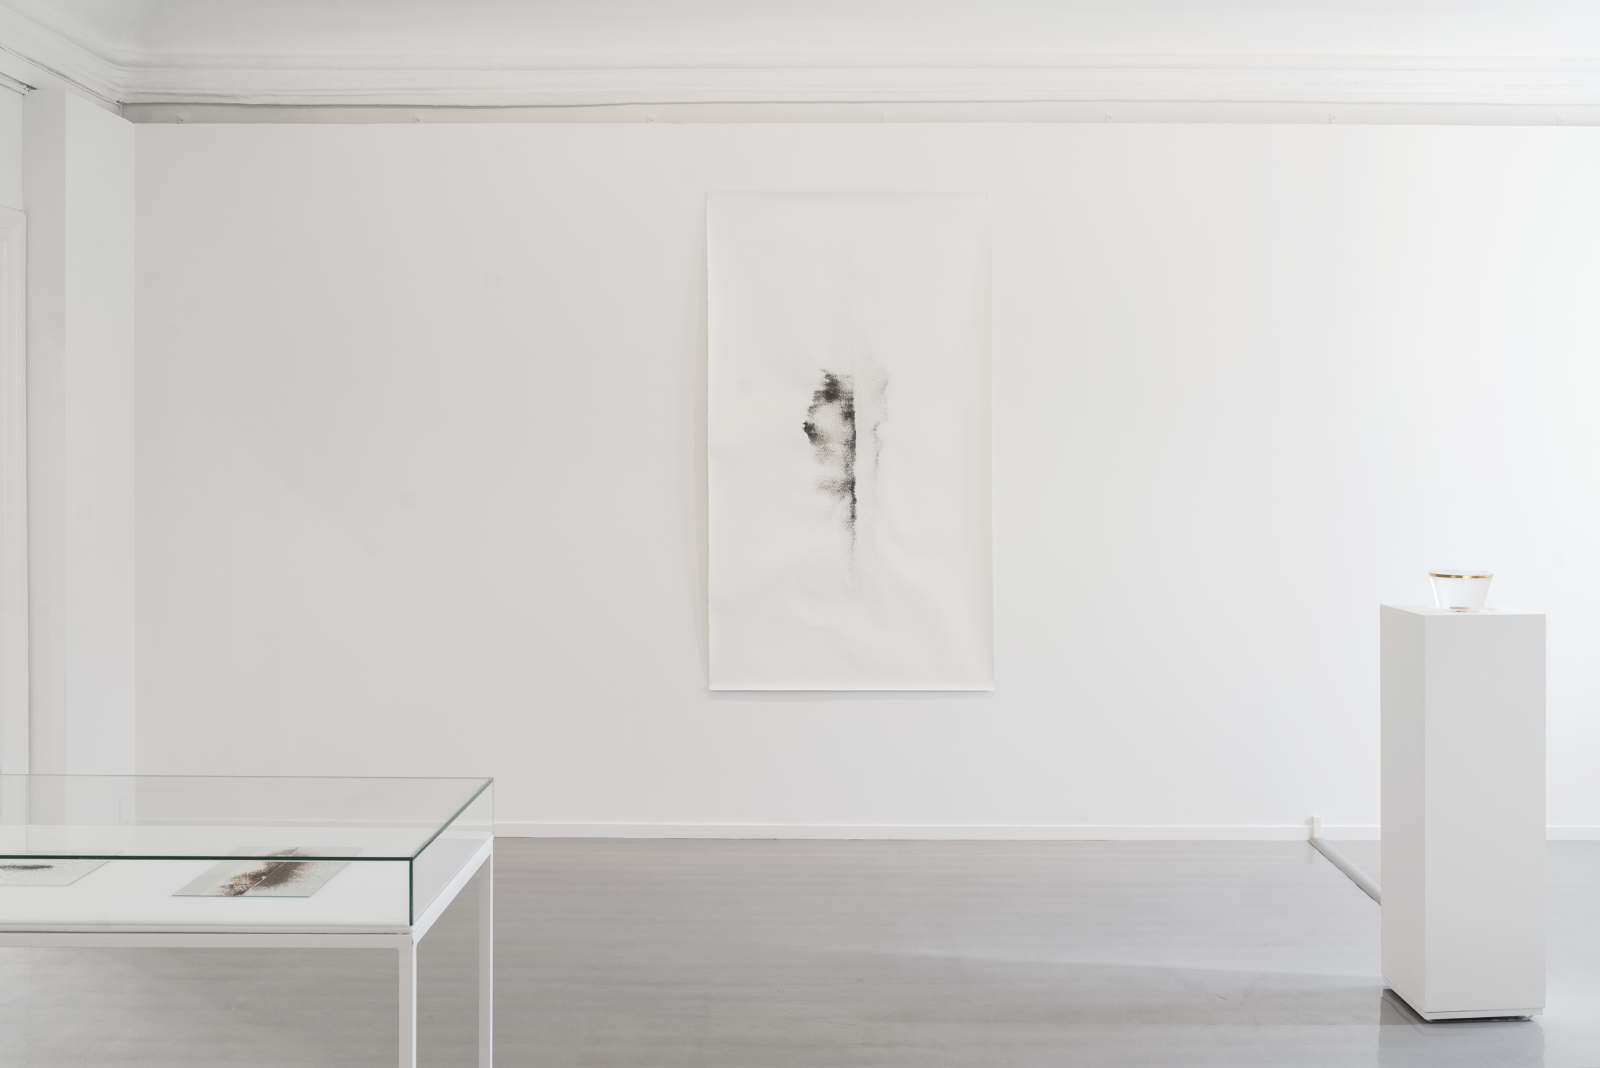 Solo exhibition - DRAWING and SCULPTURE